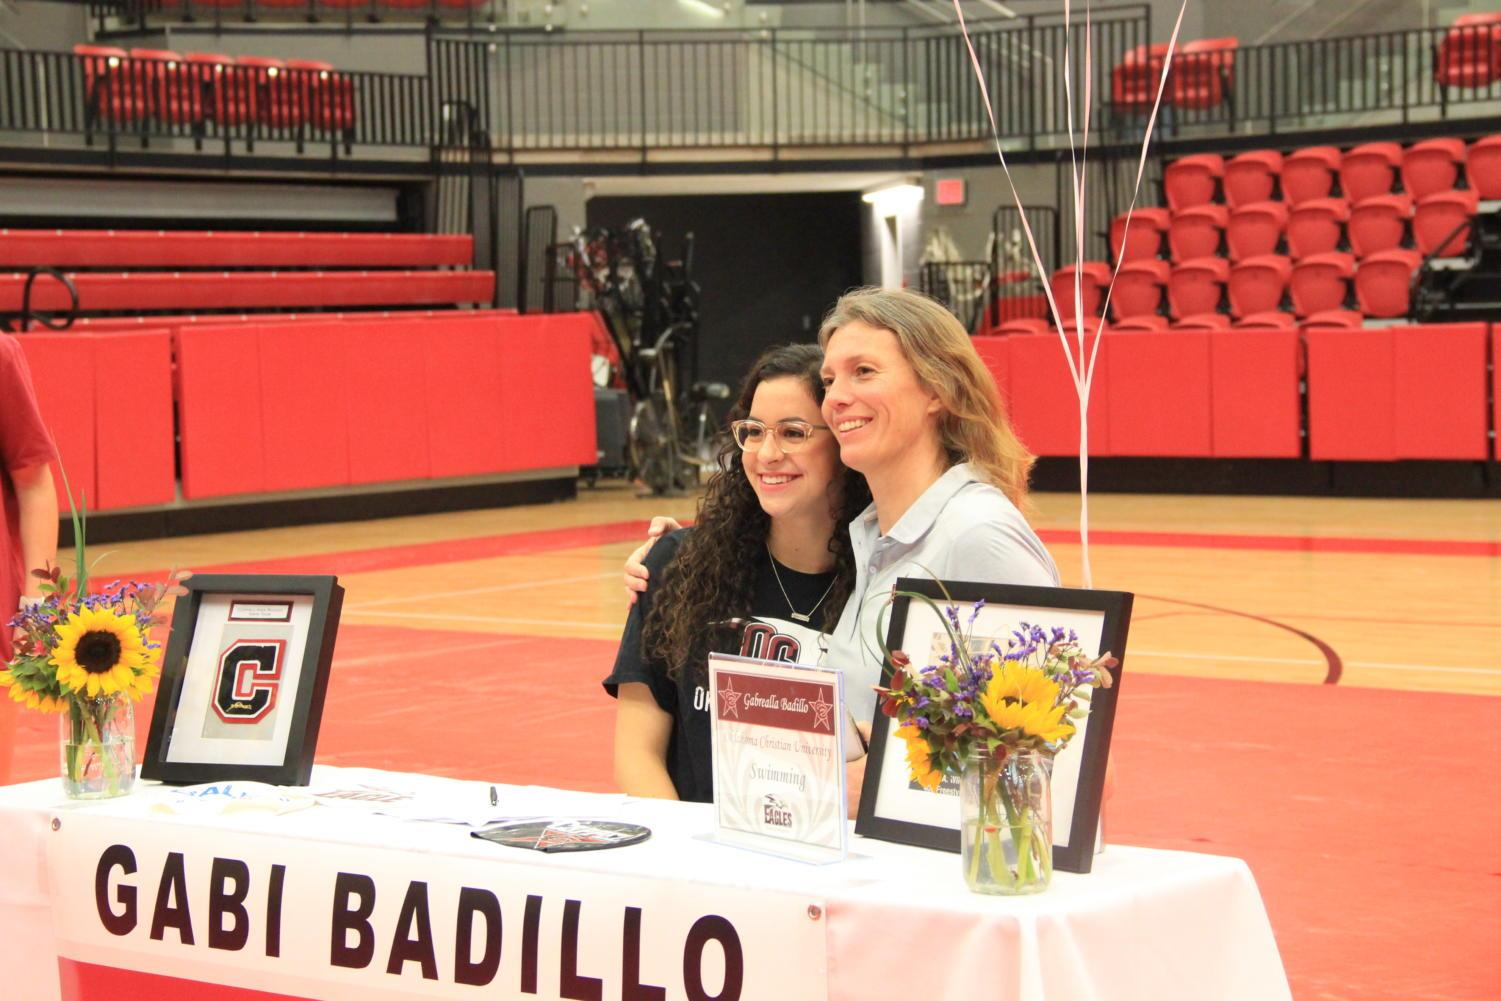 Coppell High School senior Gabi Badillo smiles for the camera with her coach after signing with Oklahoma Christian University on National Signing Day. Students are signing their letters of intent for the college they intend to play for in the upcoming year.